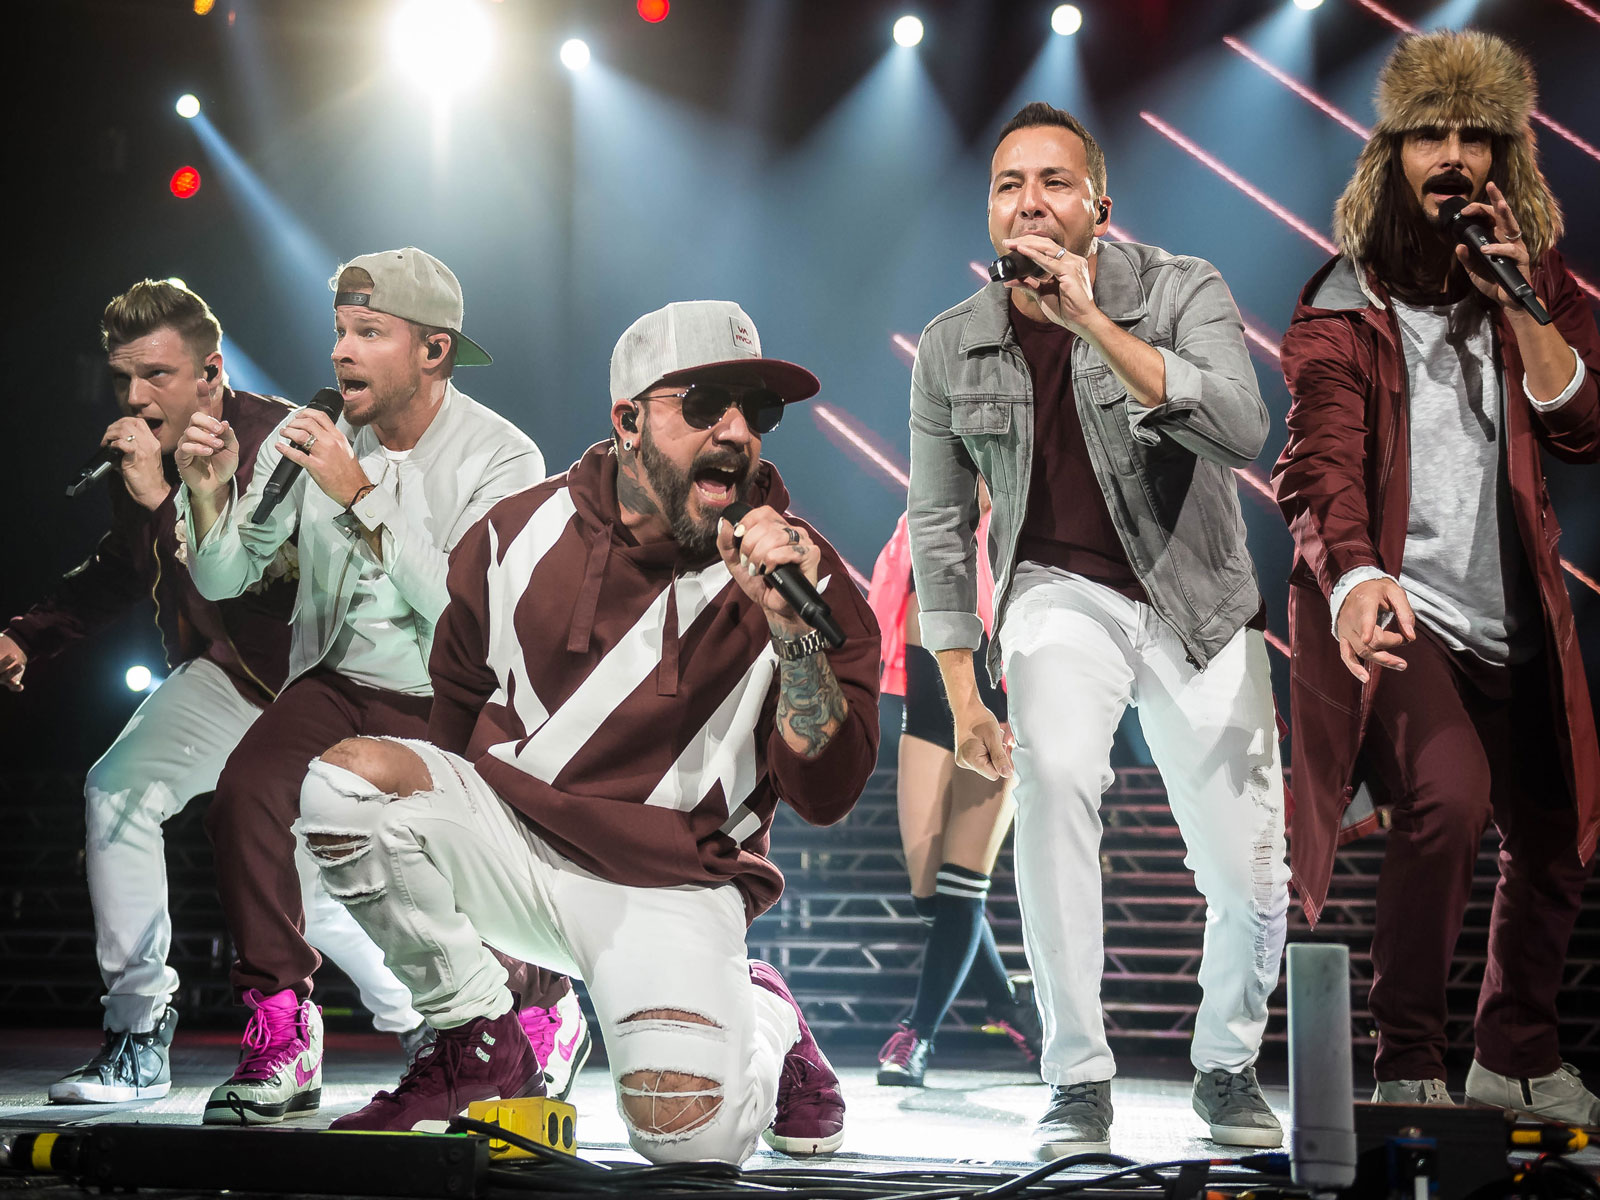 The Backstreet Boys Want to Get into the Tequila Business